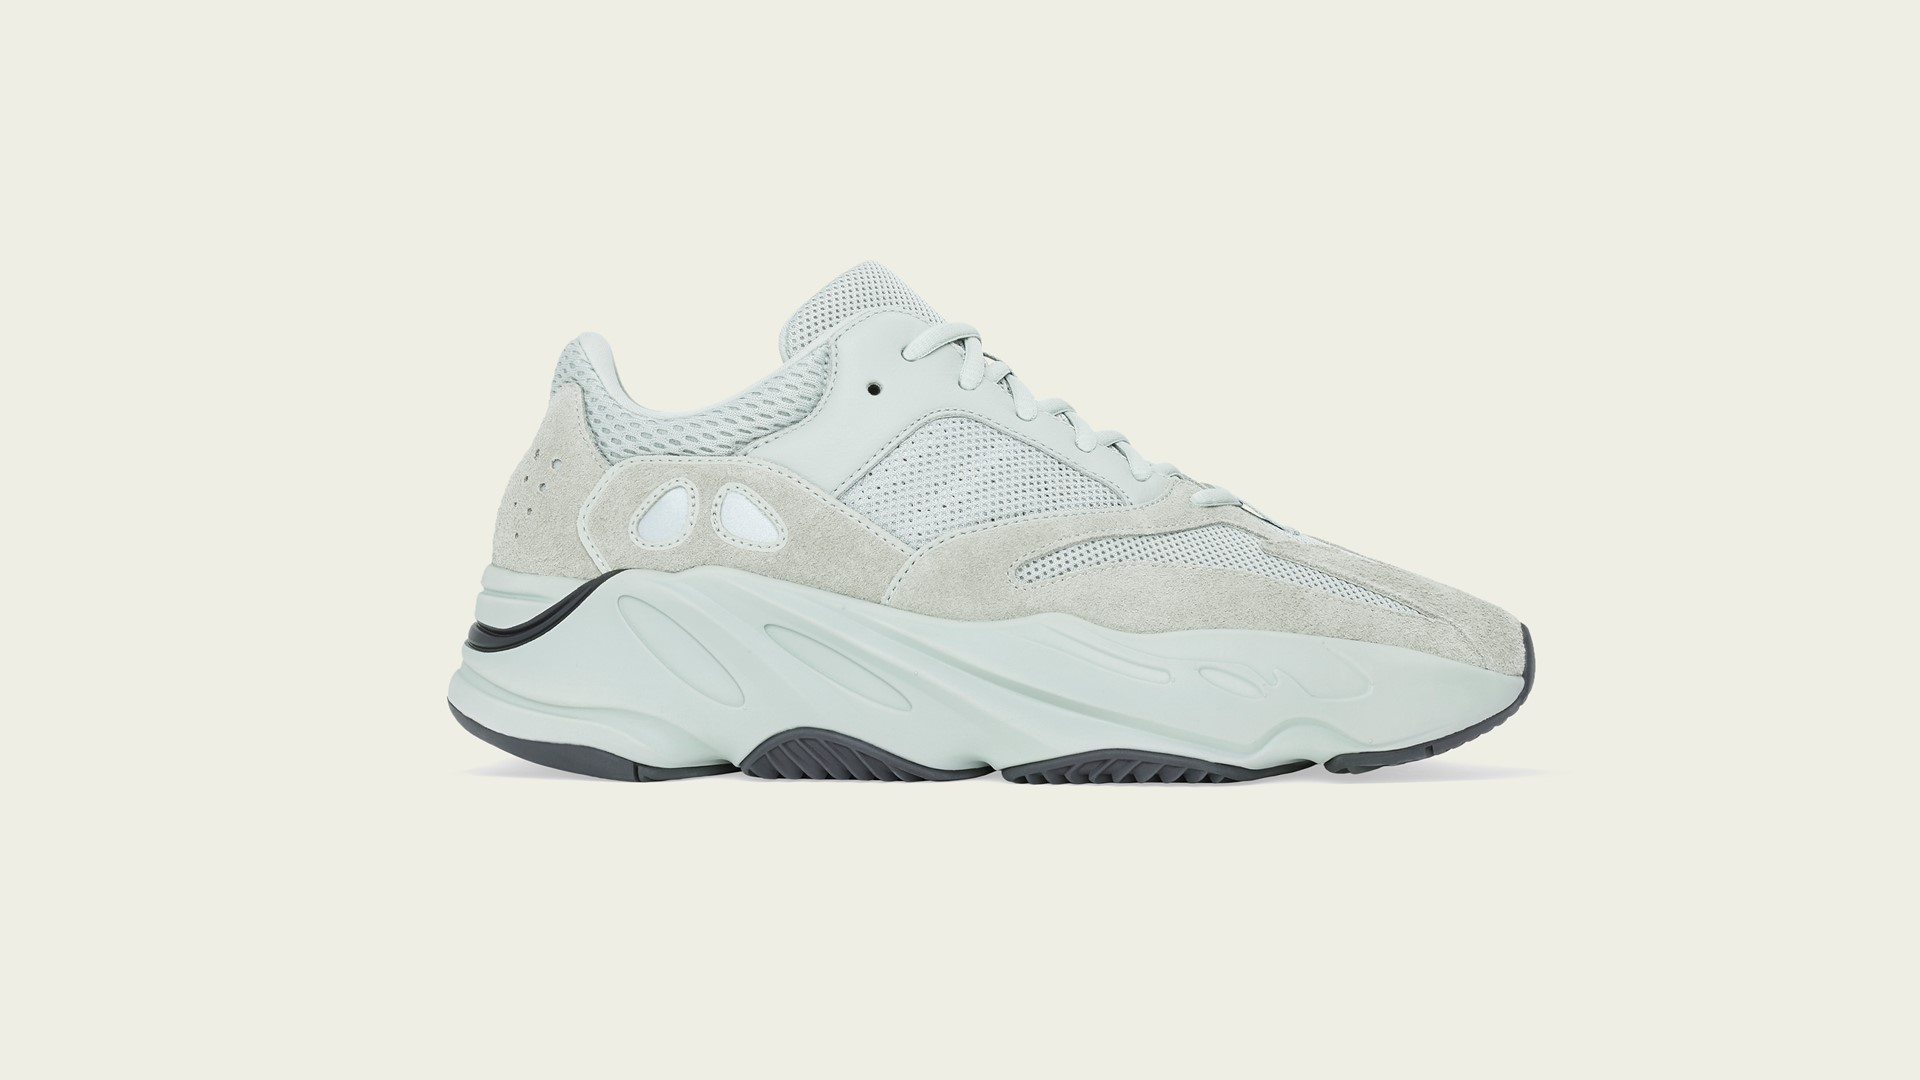 82c56efa8047d adidas and Kanye West announce the YEEZY BOOST 700 SALT